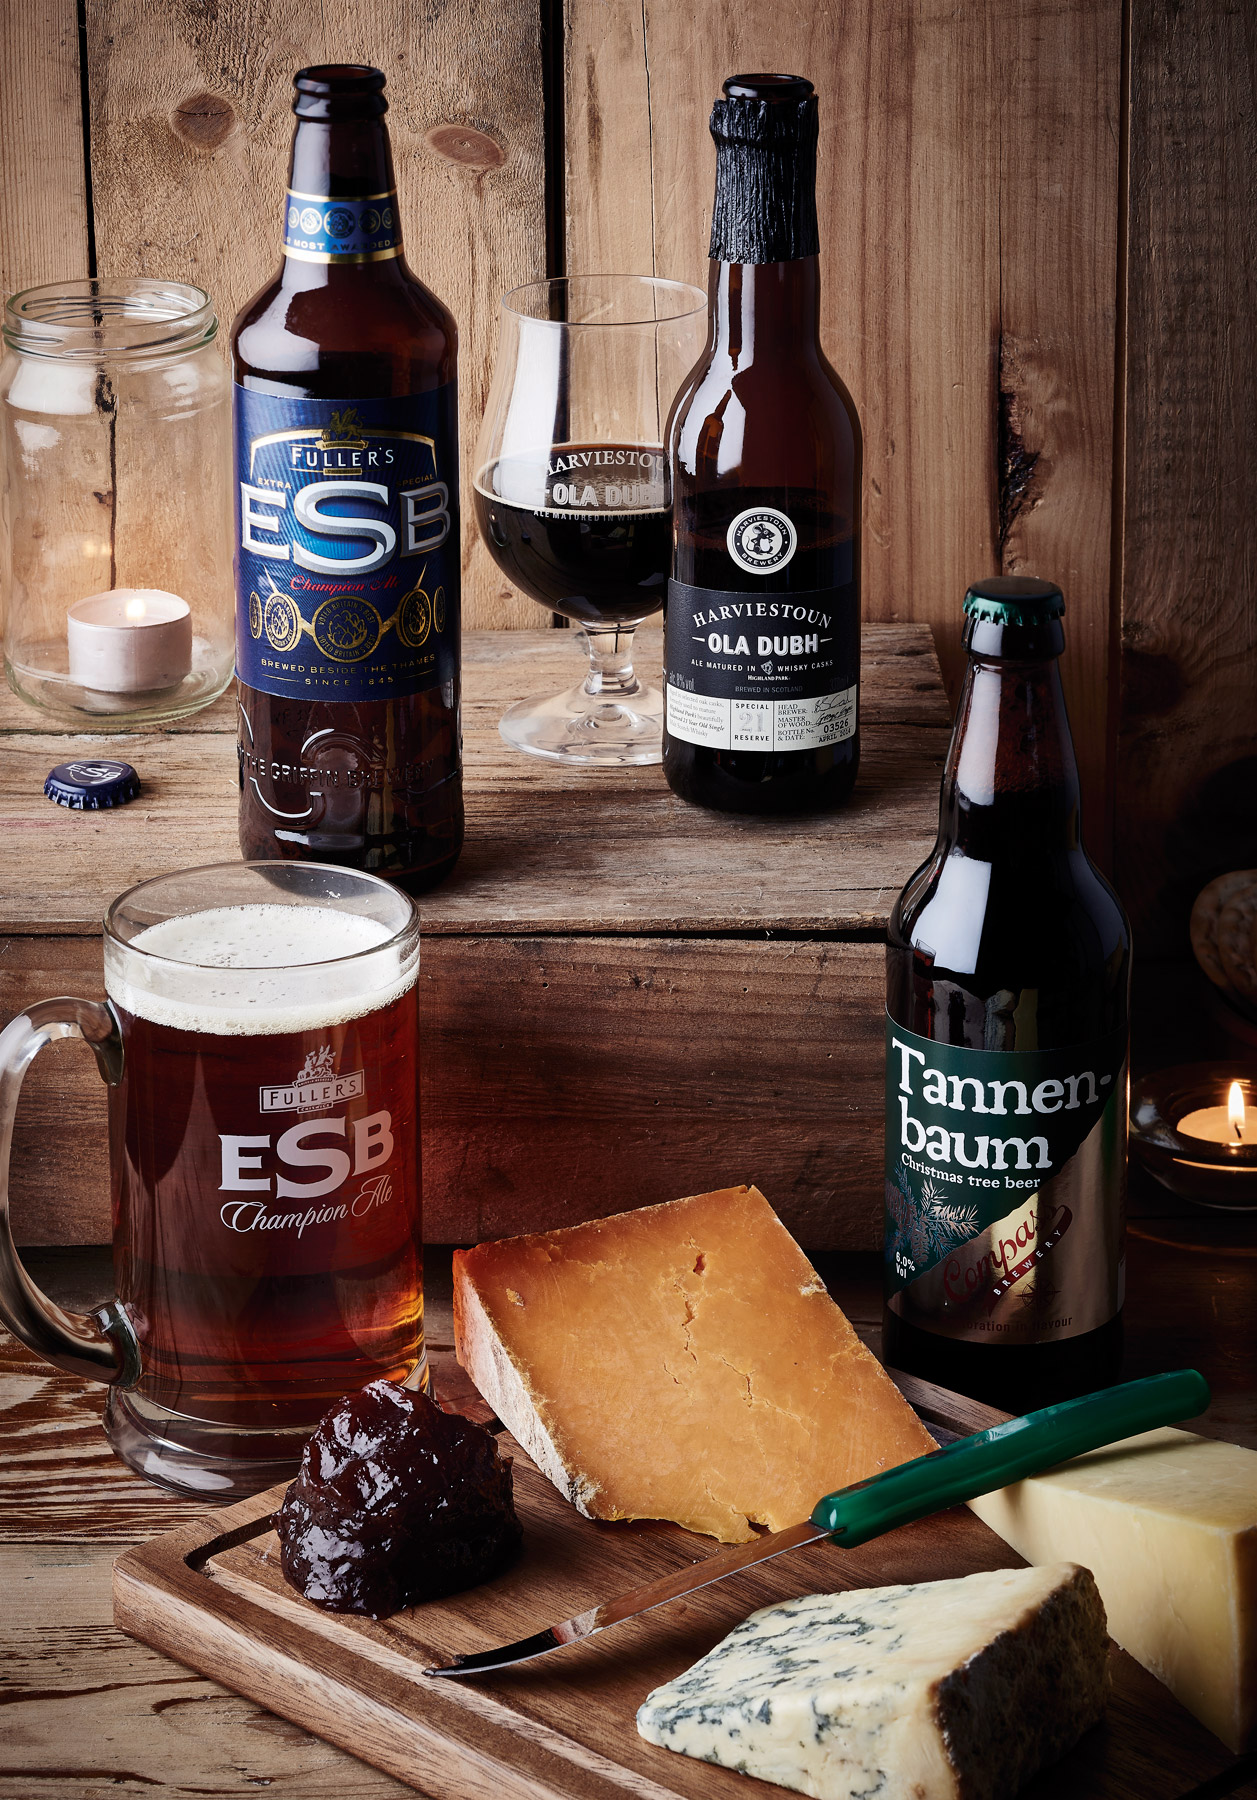 Craft beer selection on a wooden background with cheese